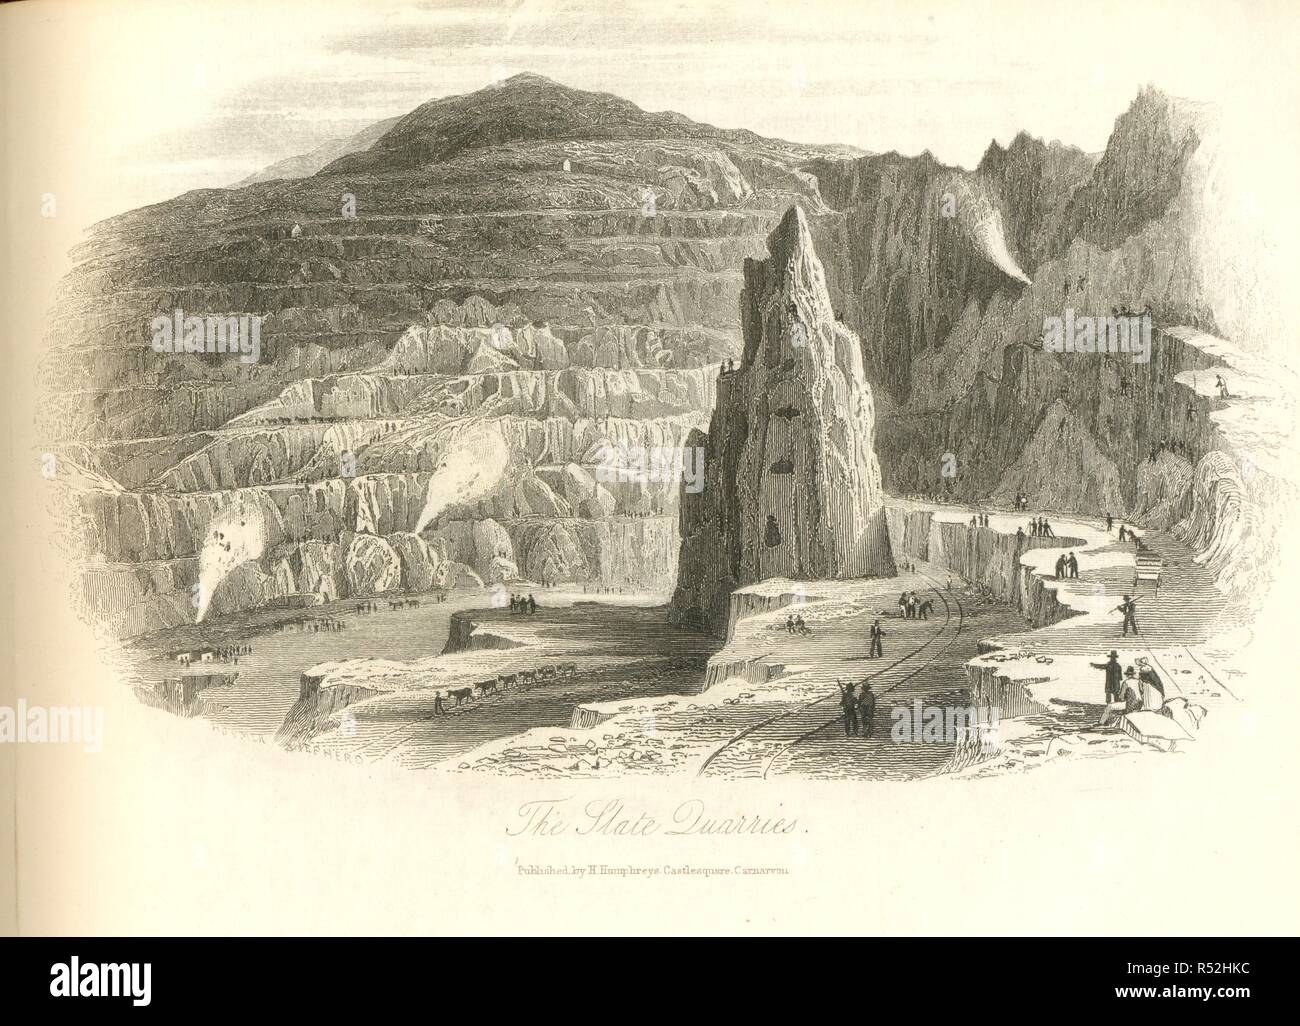 Sheet pictorial writing paper showing The Slate Quarries, Gwynedd, Wales - Stock Image